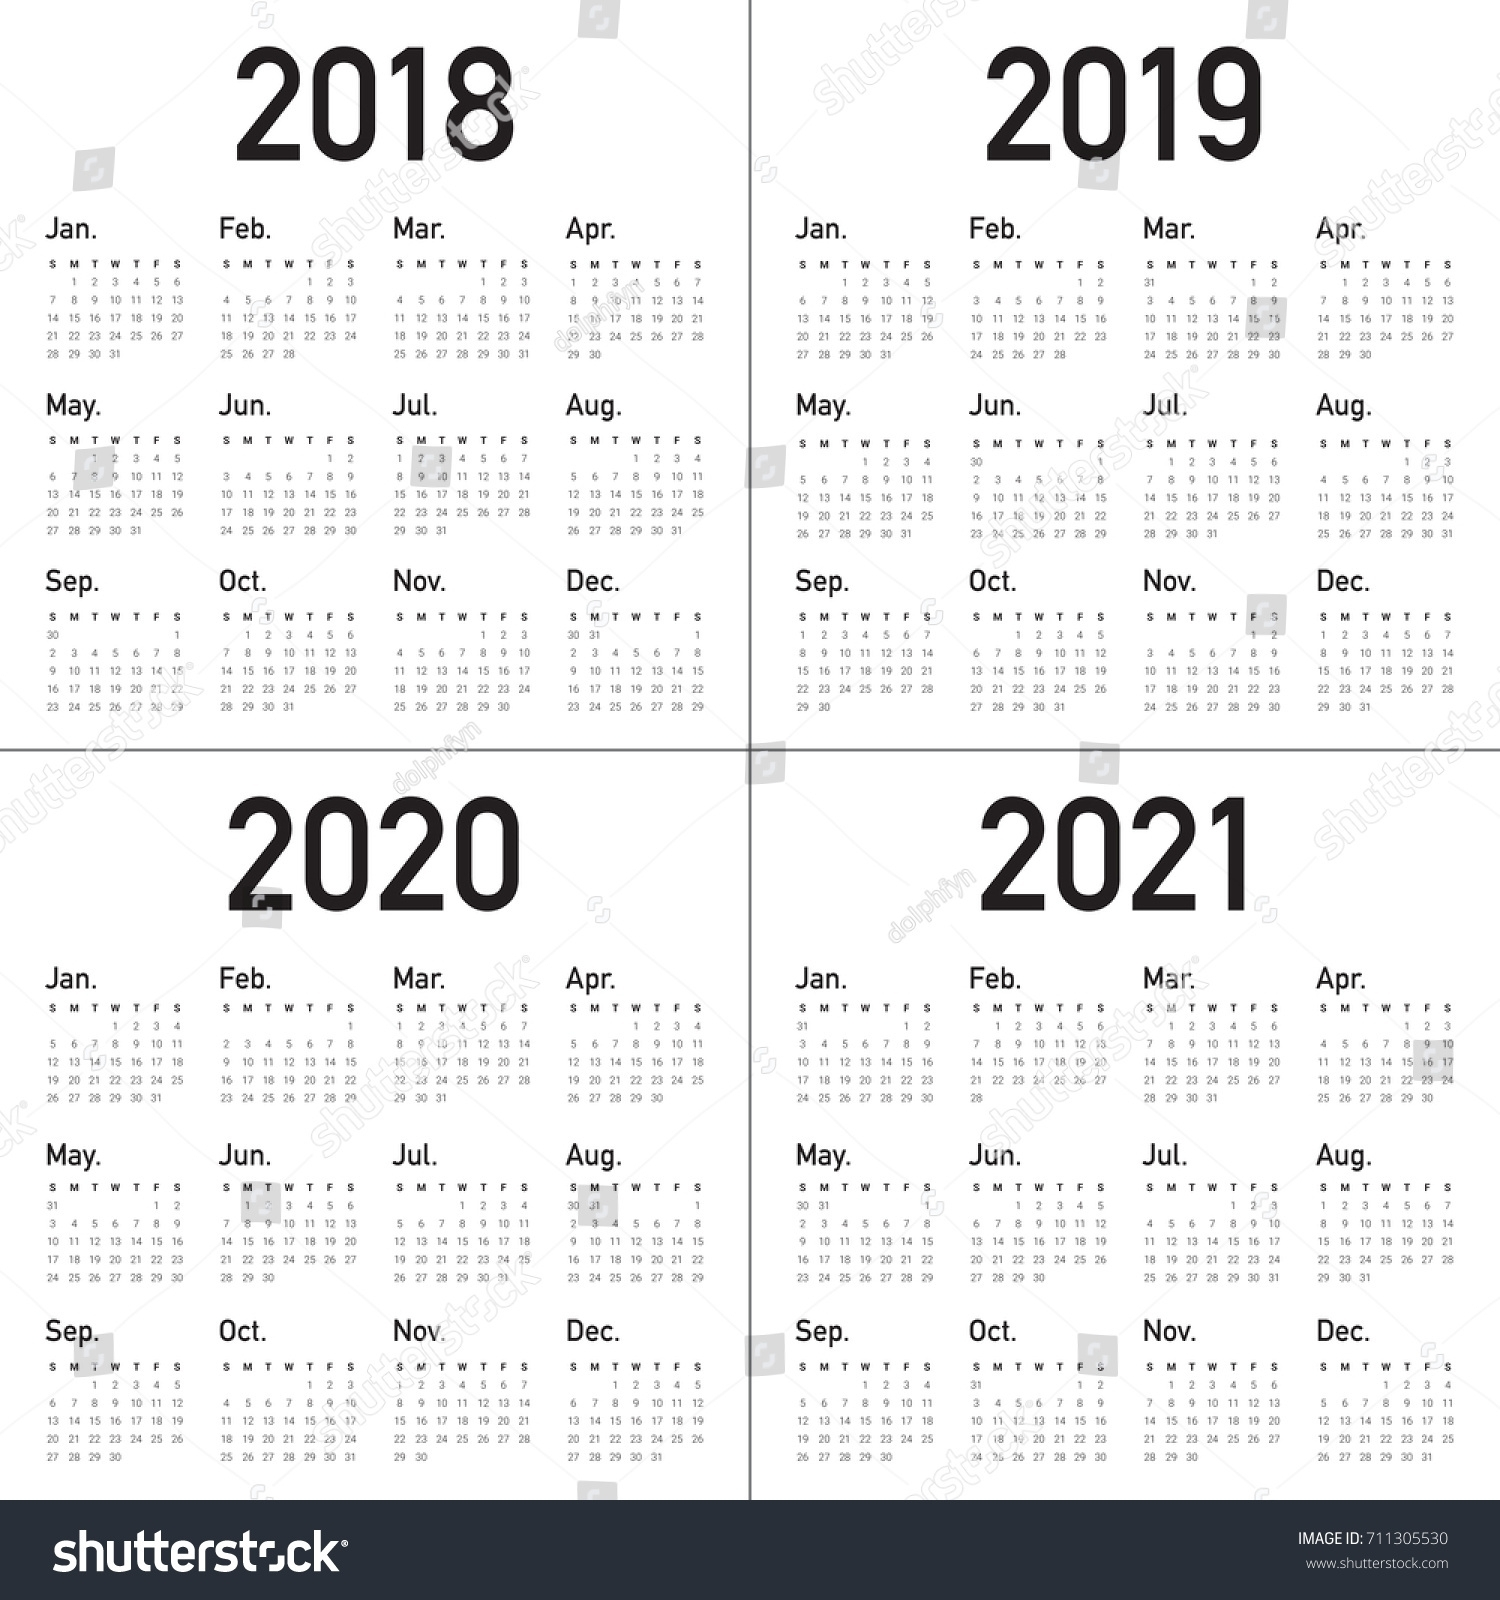 Printable 3 Year Calendar 2019 To 2021 | Printable Calendar 2019 within Free Printable 3 Year Calendar 2019 2020 2021